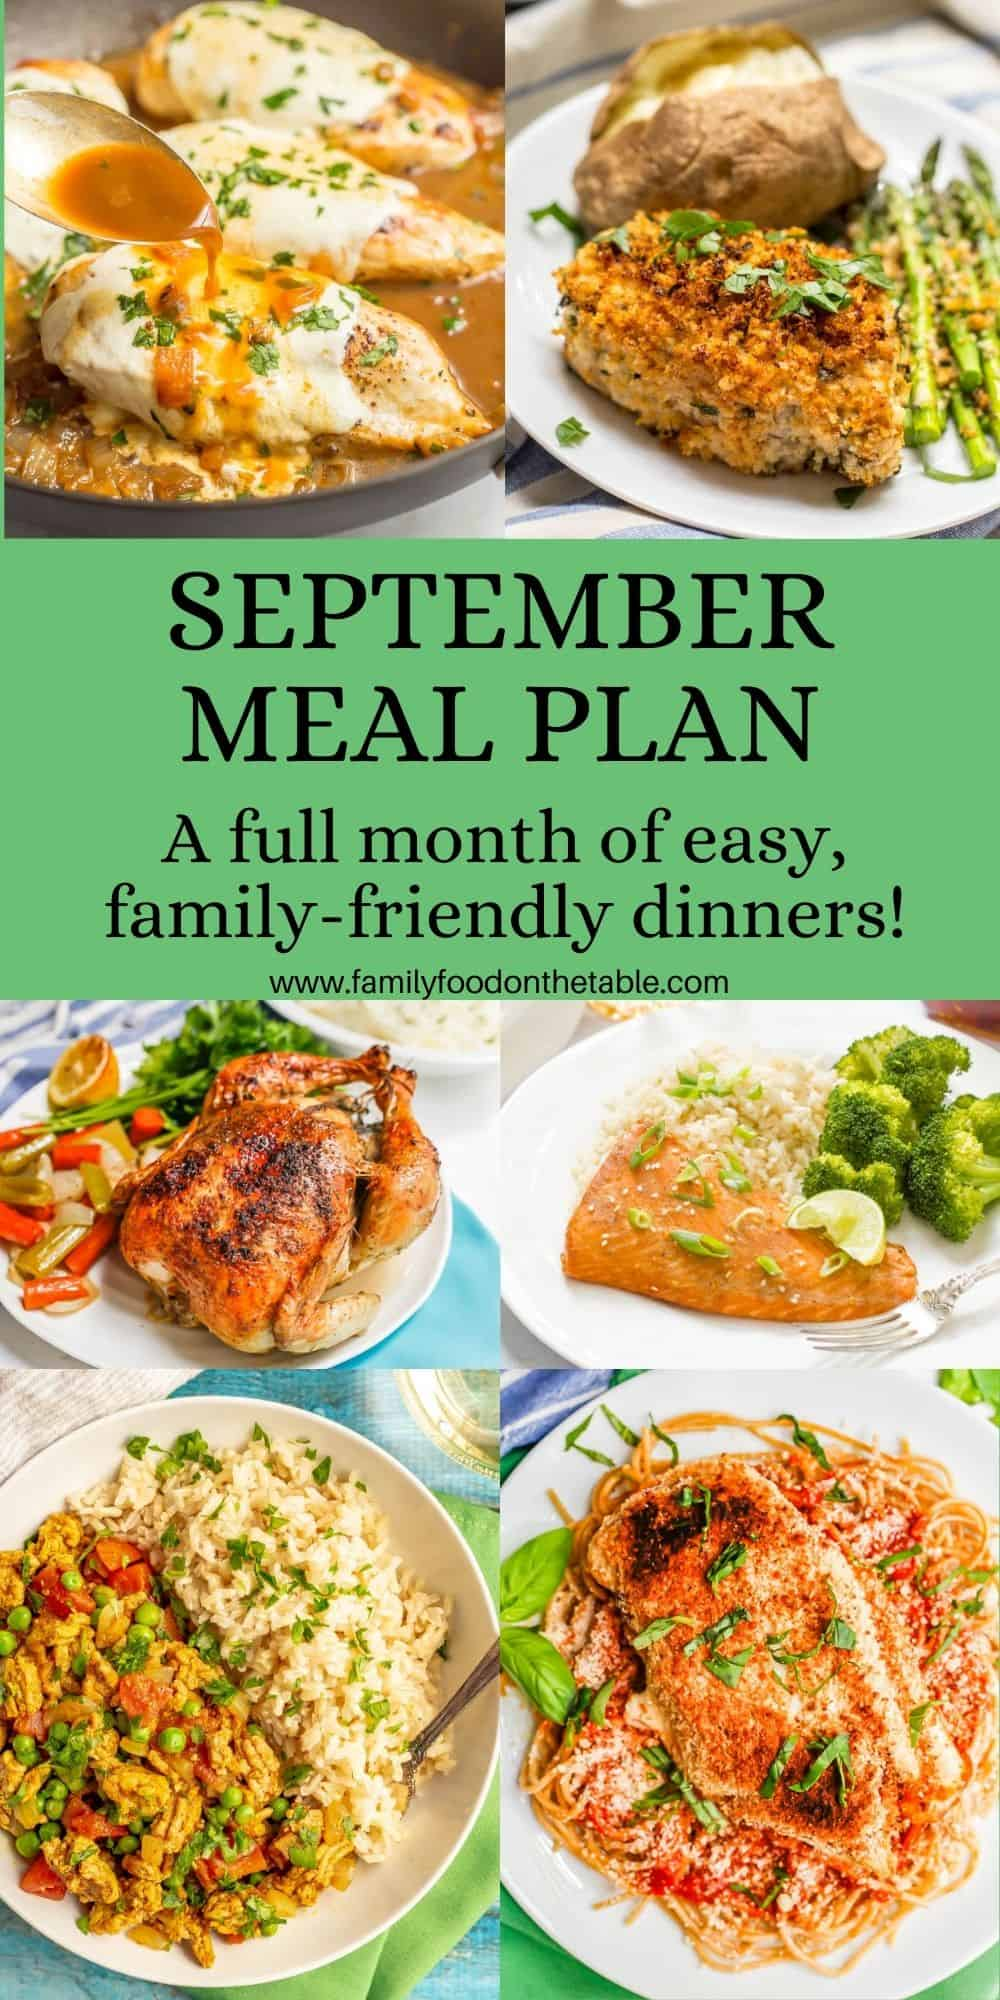 Photos of 6 family-friendly dinner ideas for a September meal plan with a green text box in the middle